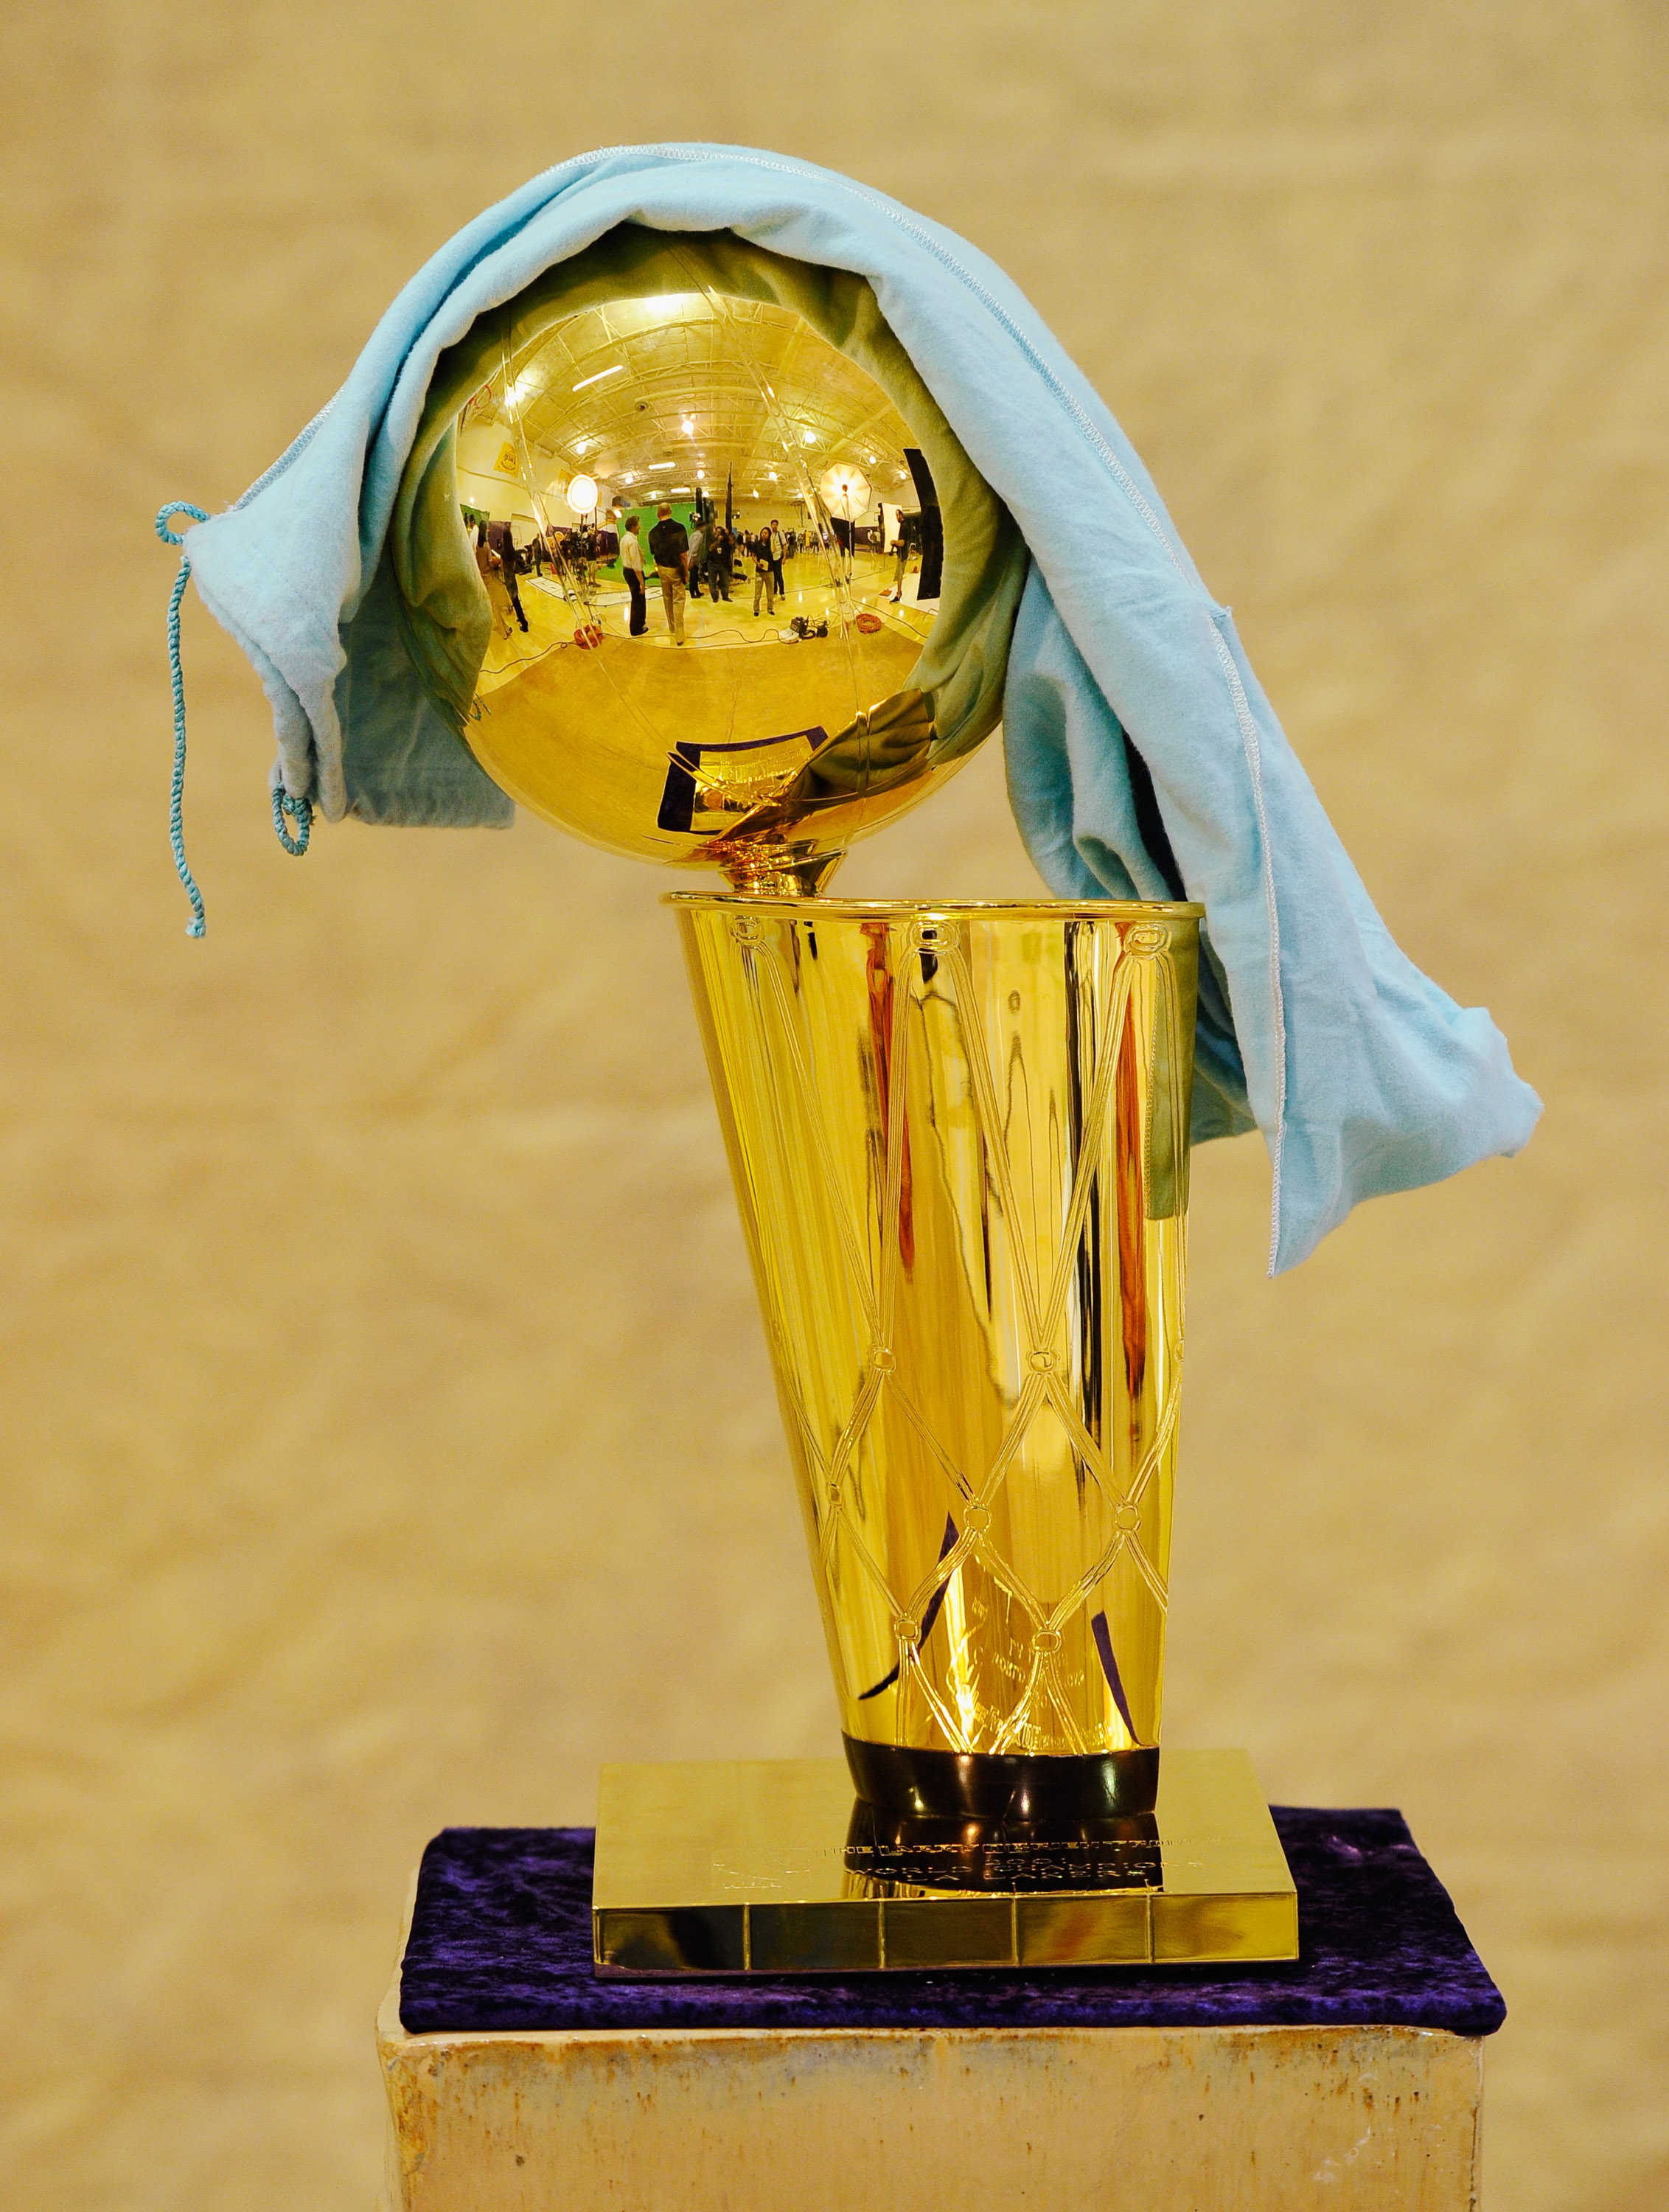 EL SEGUNDO, CA - SEPTEMBER 25:  NBA Finals Larry O'Brien Championship Trophy is covered with a protective cloth as it rest on a stand during the Los Angeles Lakers Media Day at the Toyota Center on September 25, 2010 in El Segundo, California. NOTE TO USE